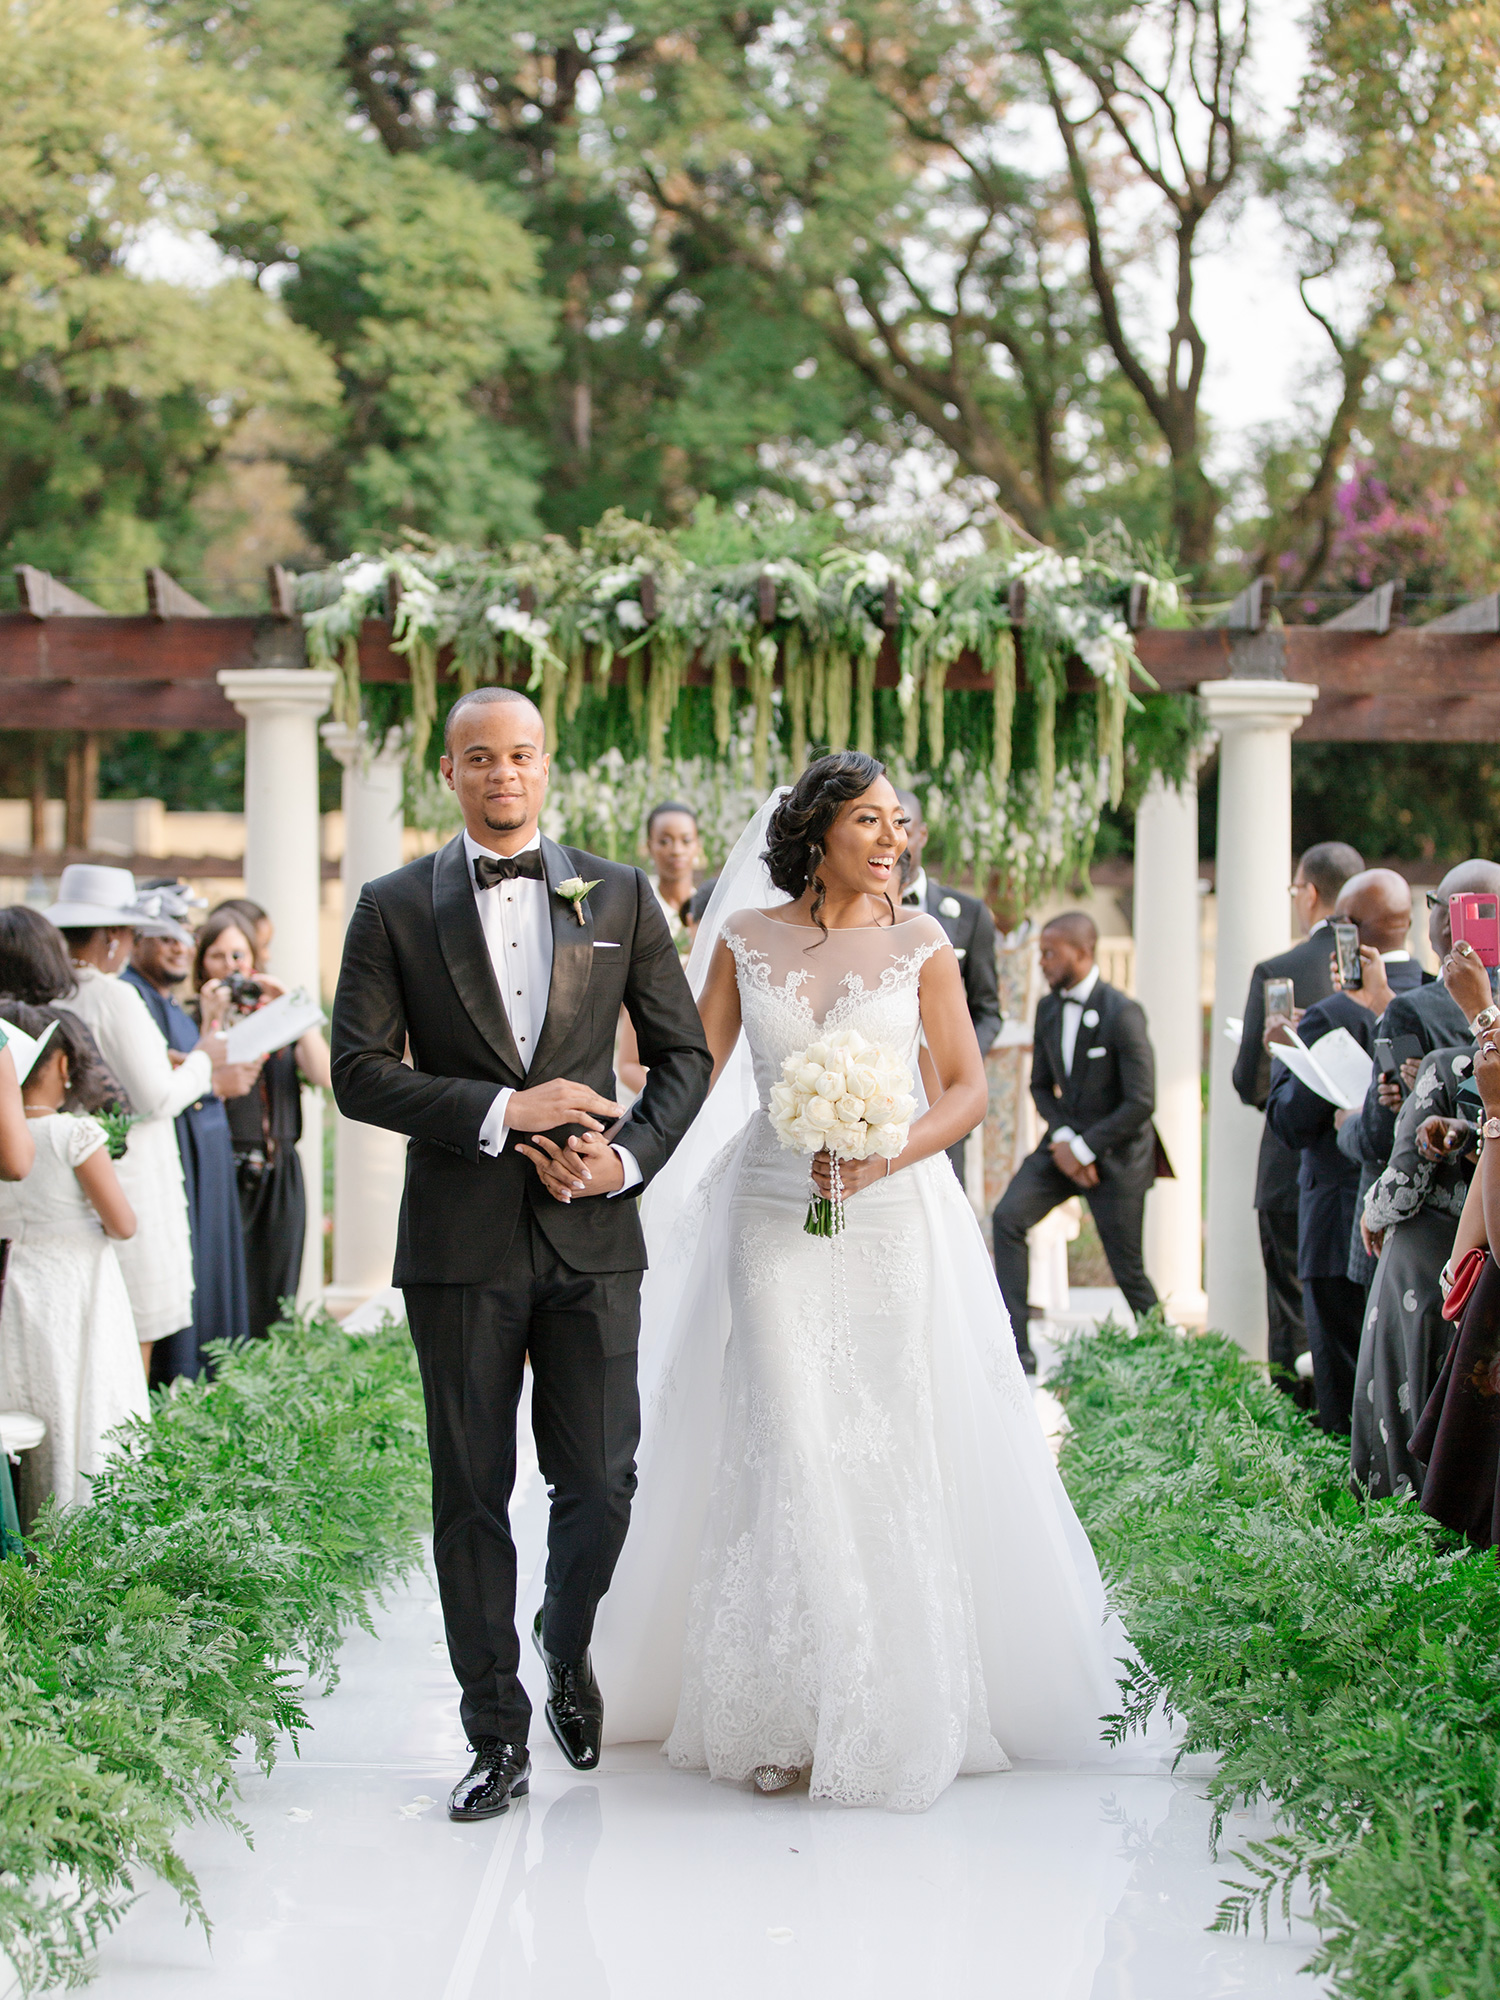 Best Hanging florals for a Ceremony | Rensche Mari Photography